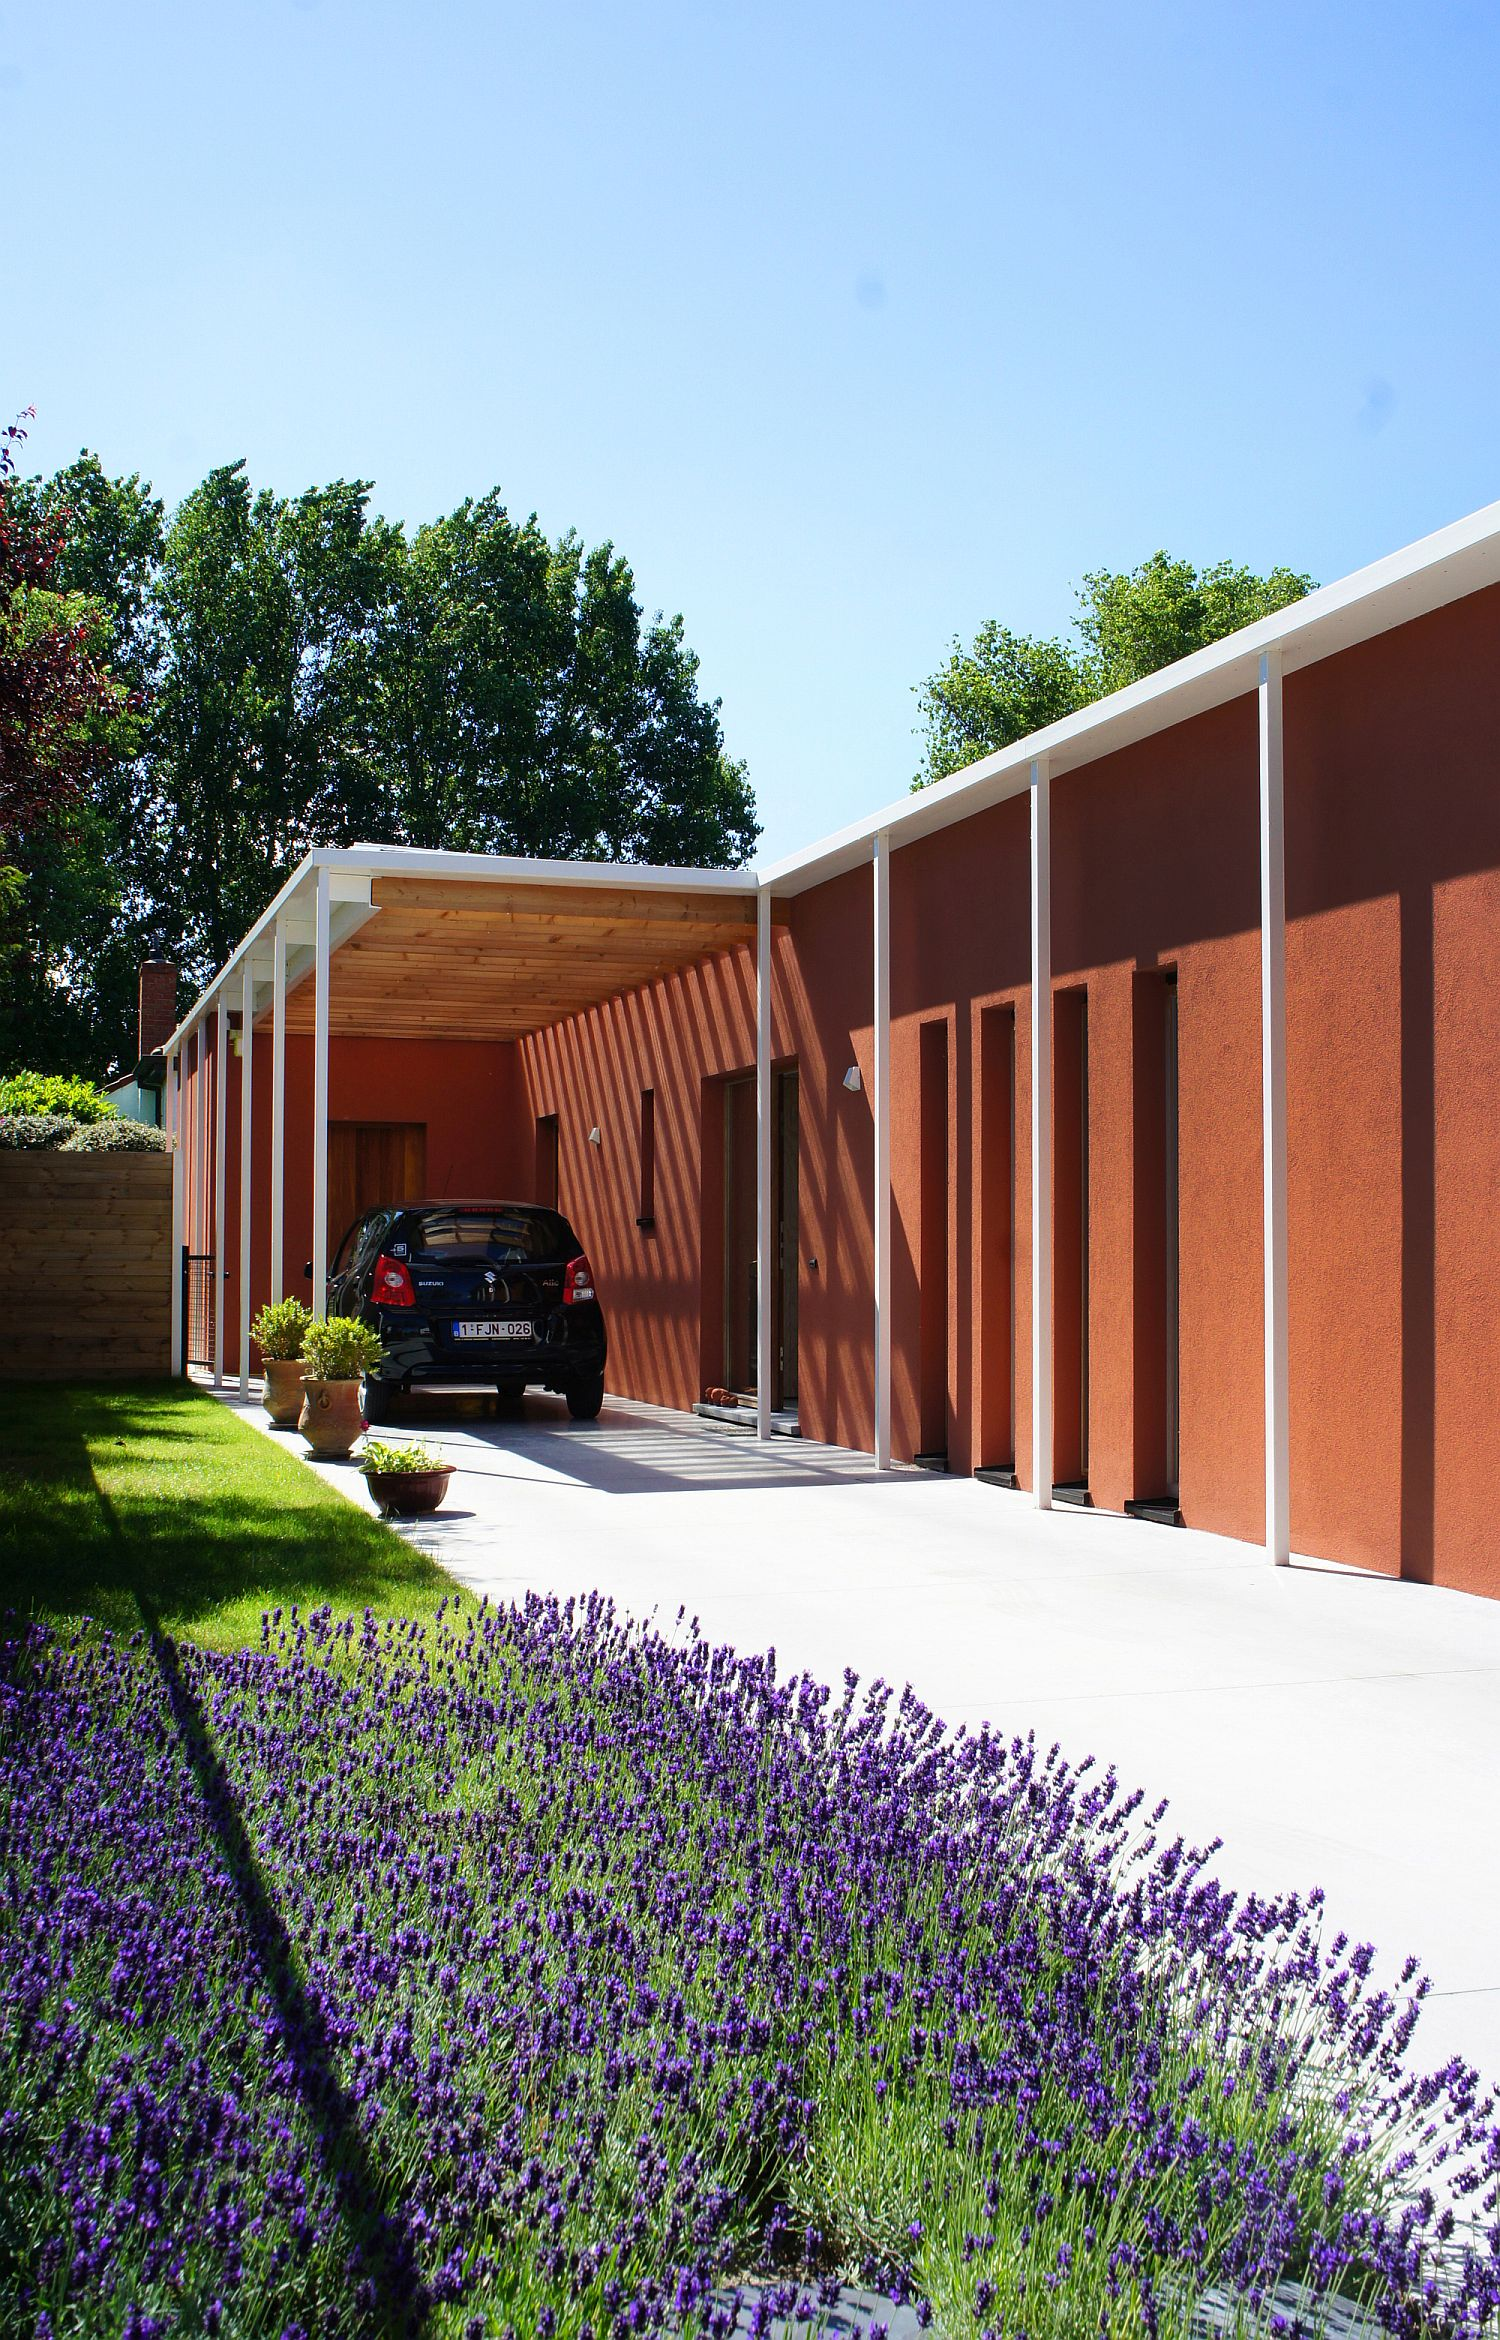 Garden and covered carport of the house